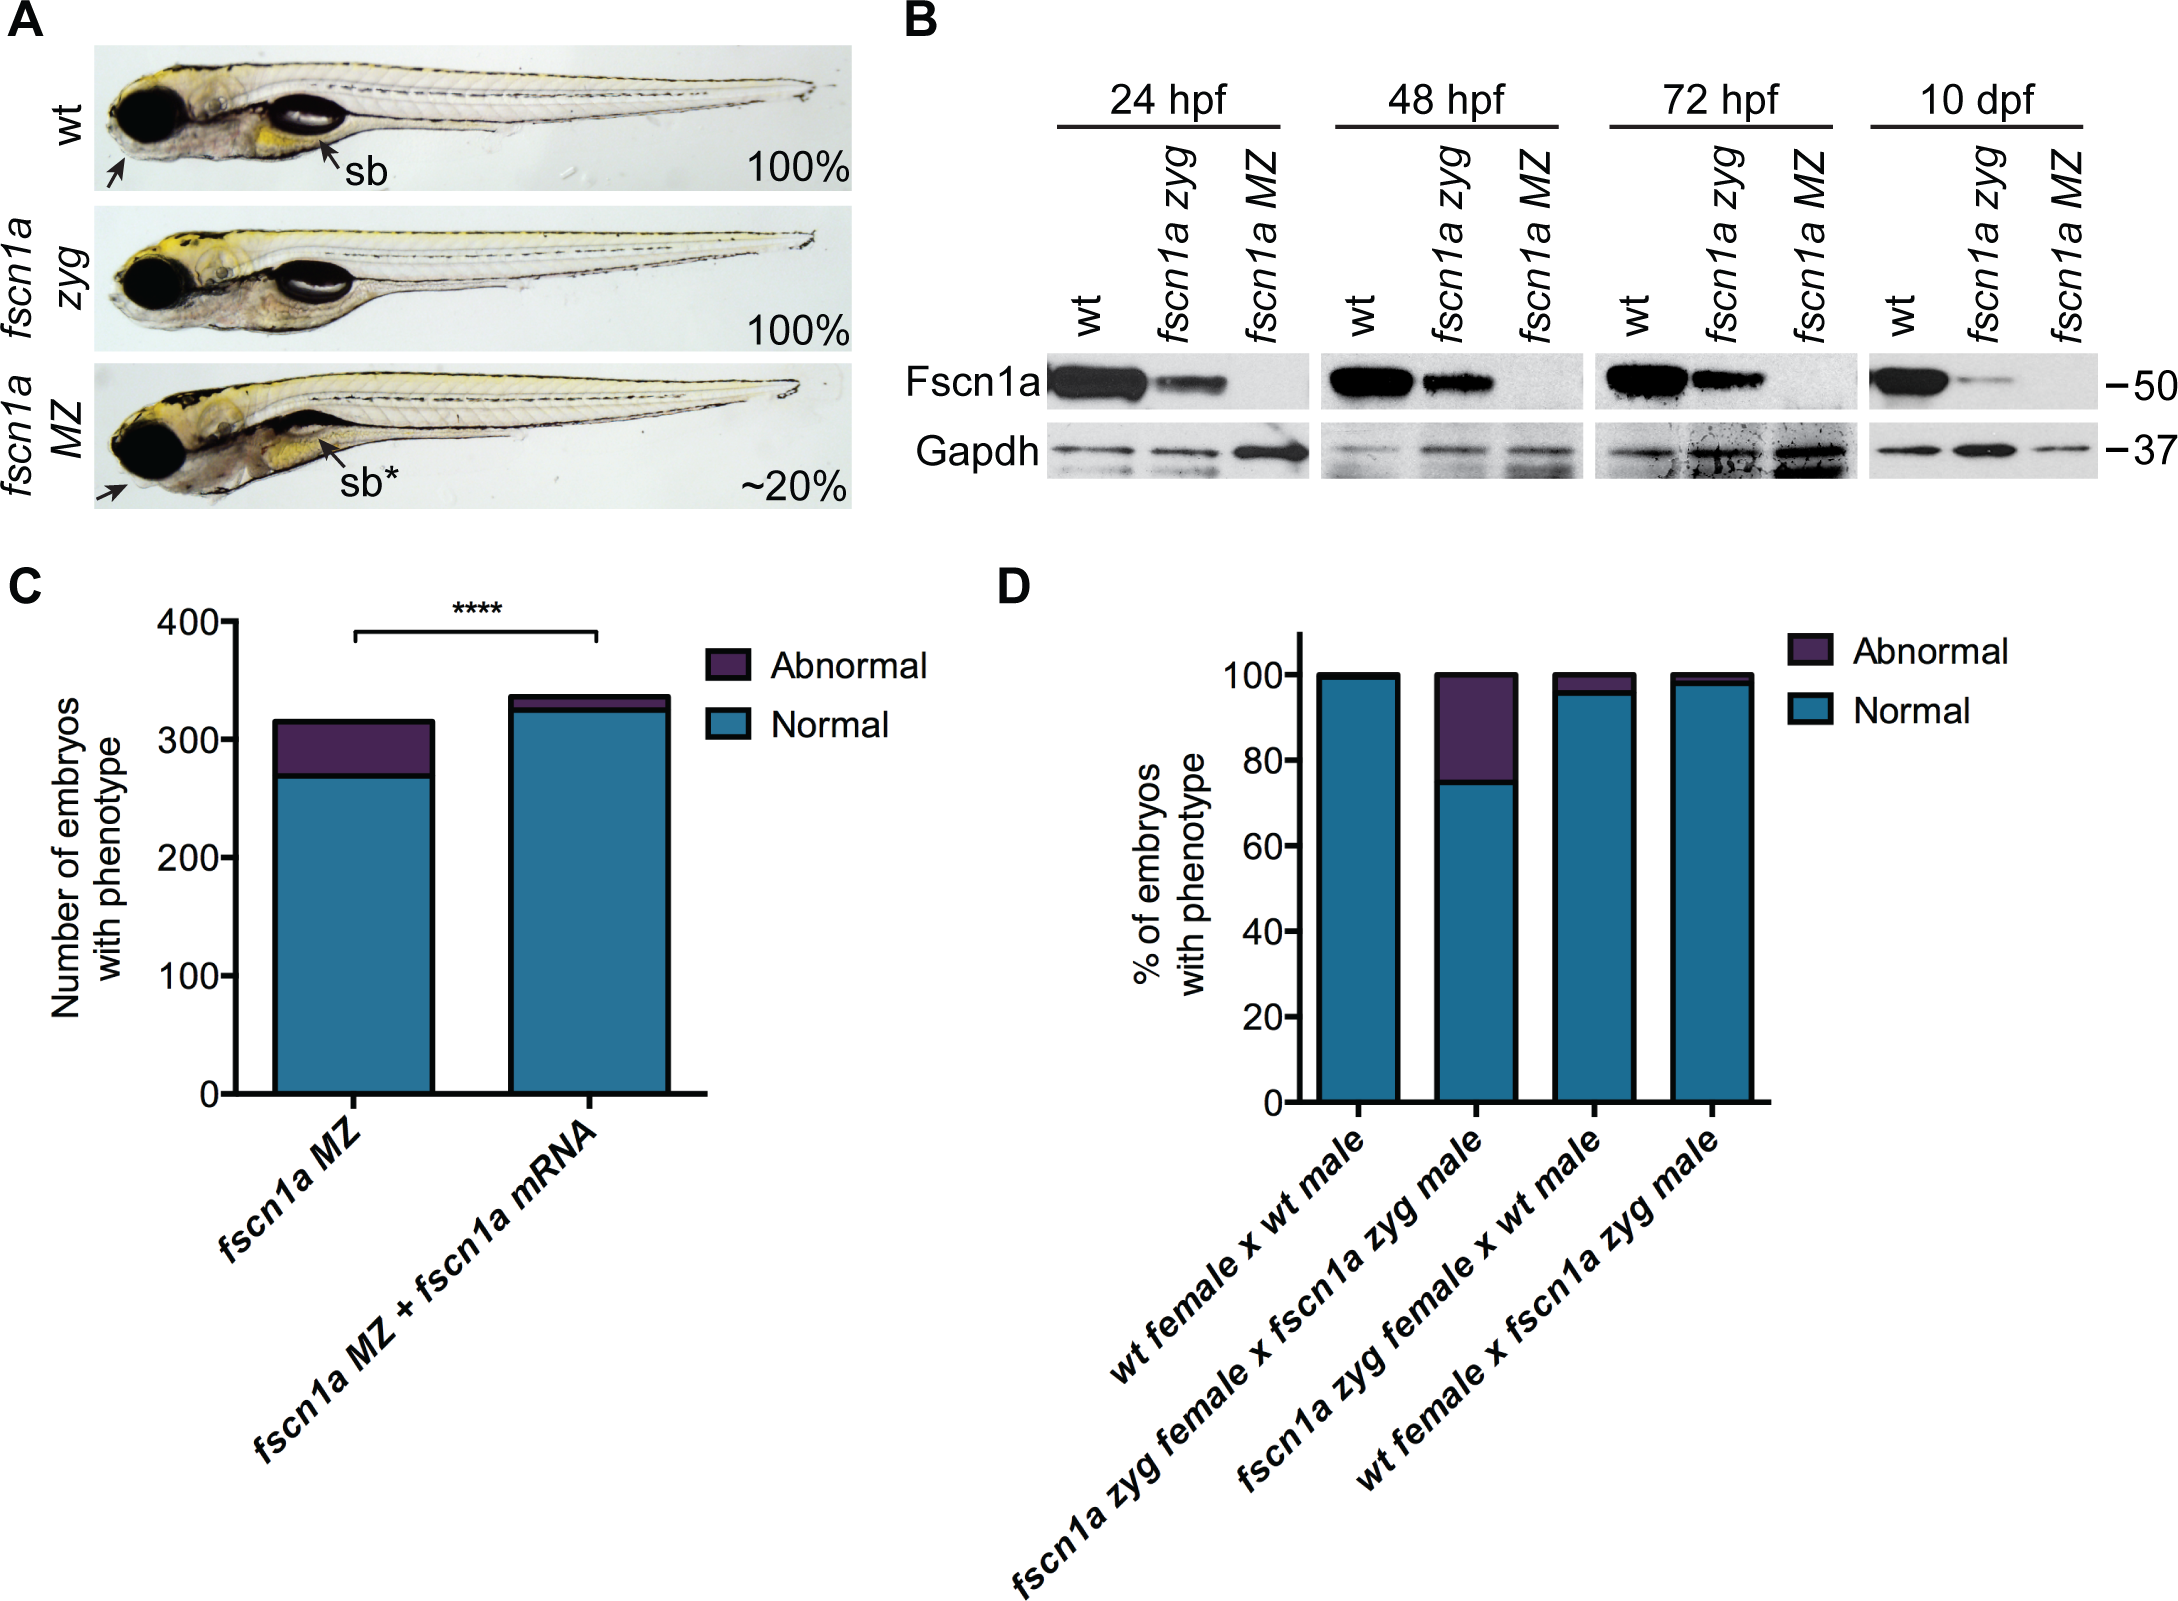 Maternal Fscn1a protein persists throughout embryogenesis and masks morphological defects in <i>fscn1a</i> zygotic mutants.